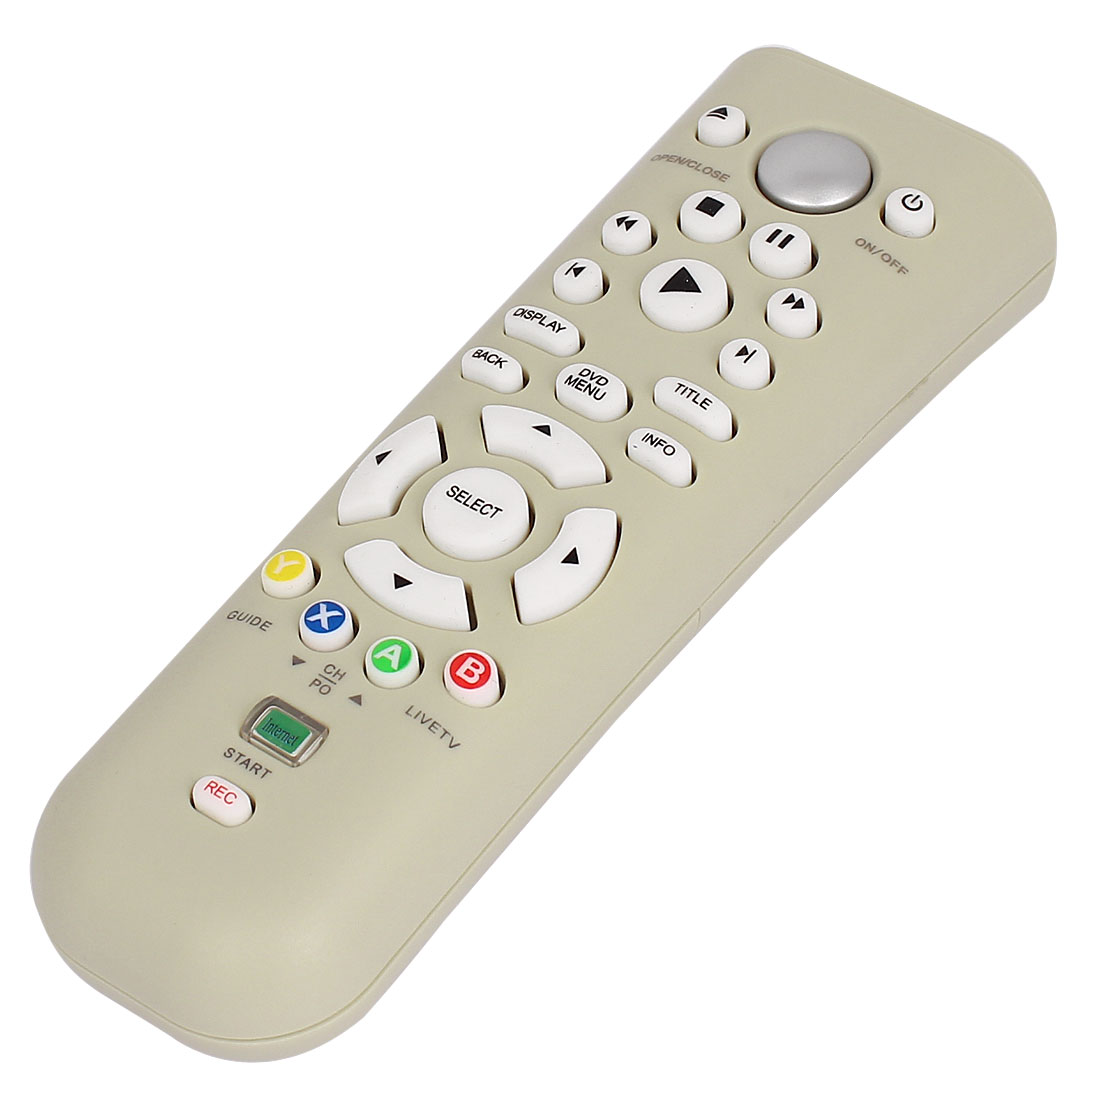 Wireless Microsoft Multimedia Media DVD Remote Control for Xbox 360